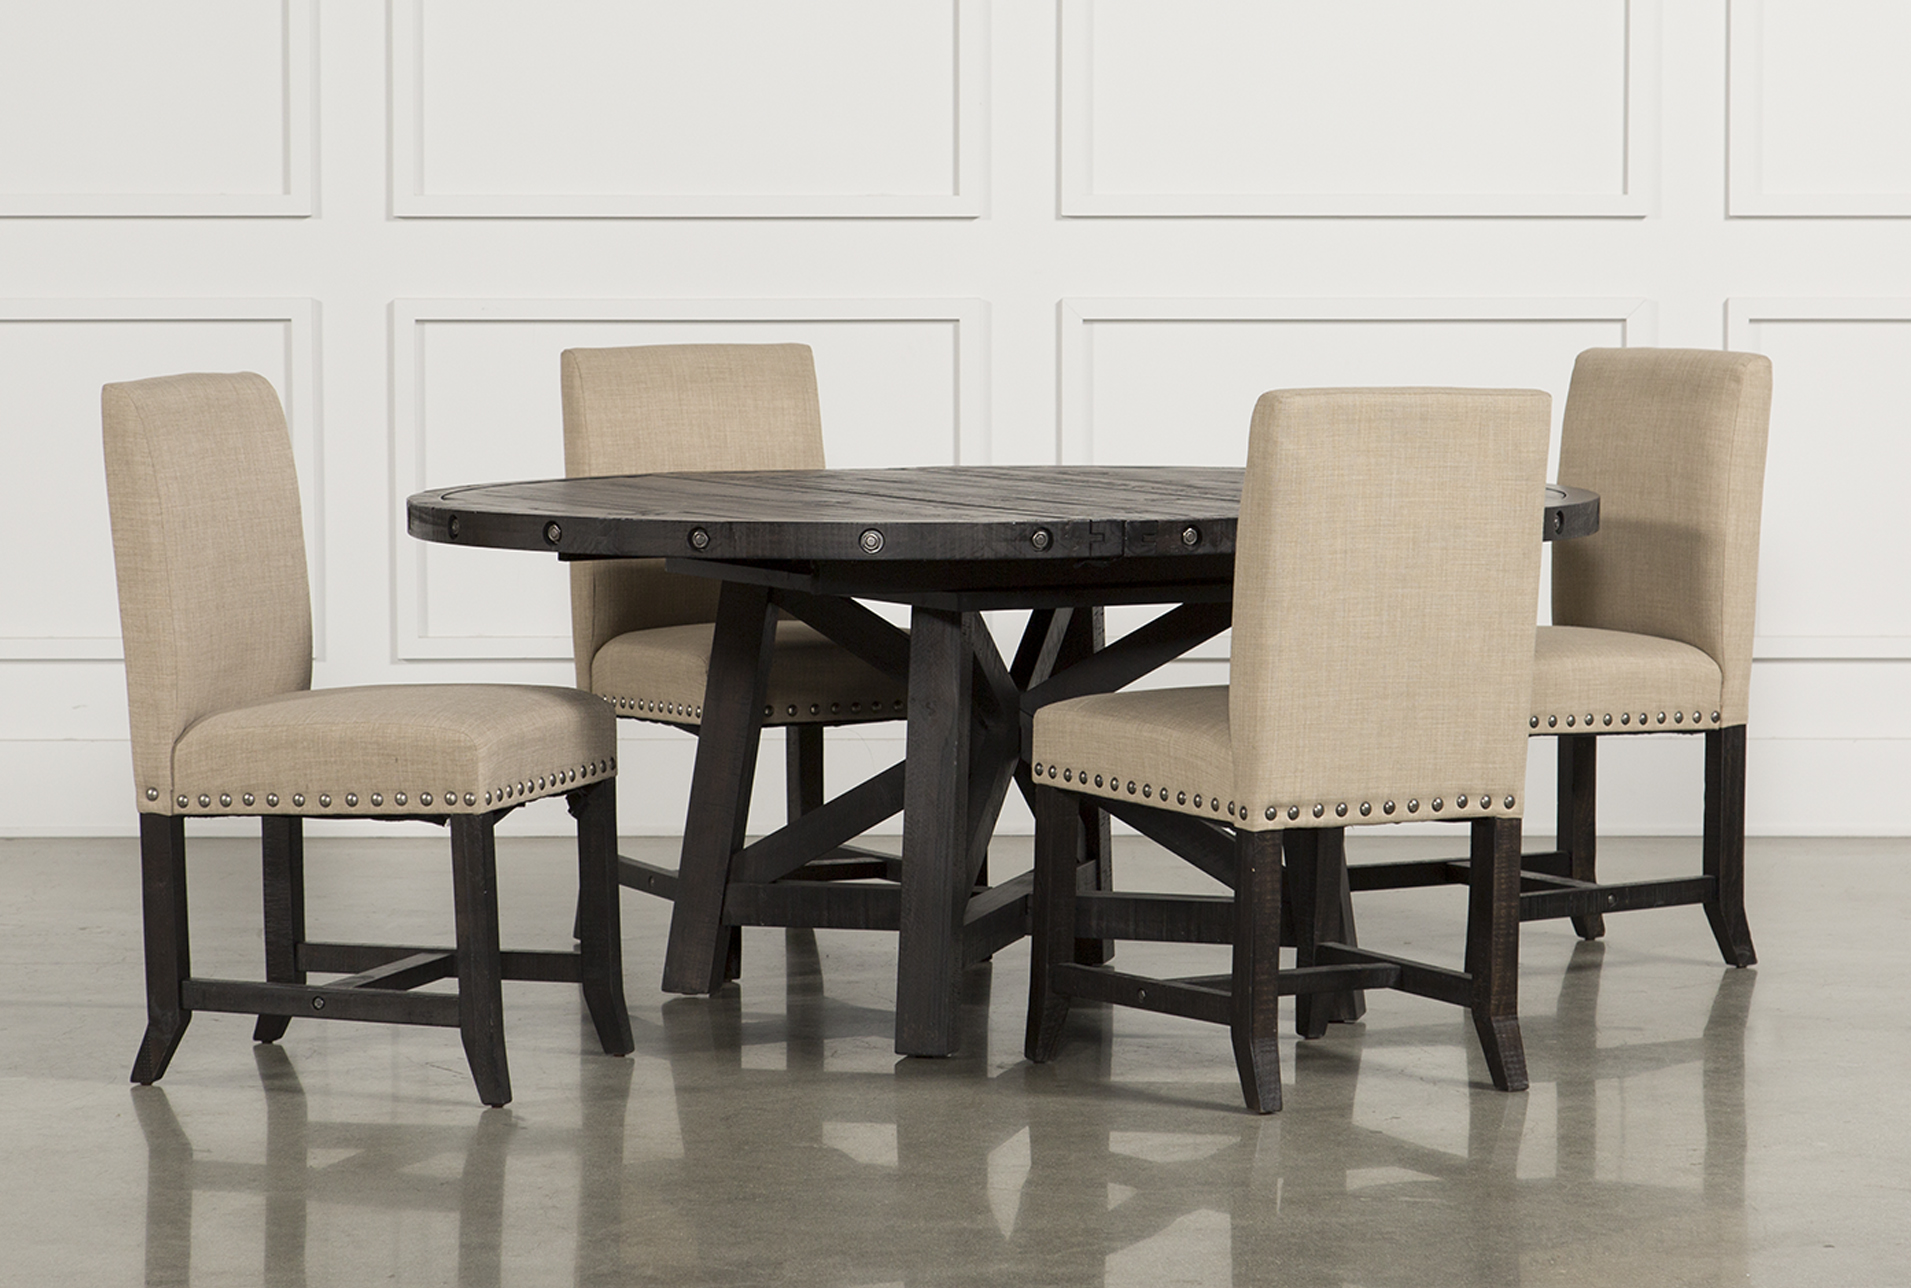 dining room table with upholstered chairs jaxon 5 piece round dining set w/upholstered chairs (qty: 1) RVUKCPB